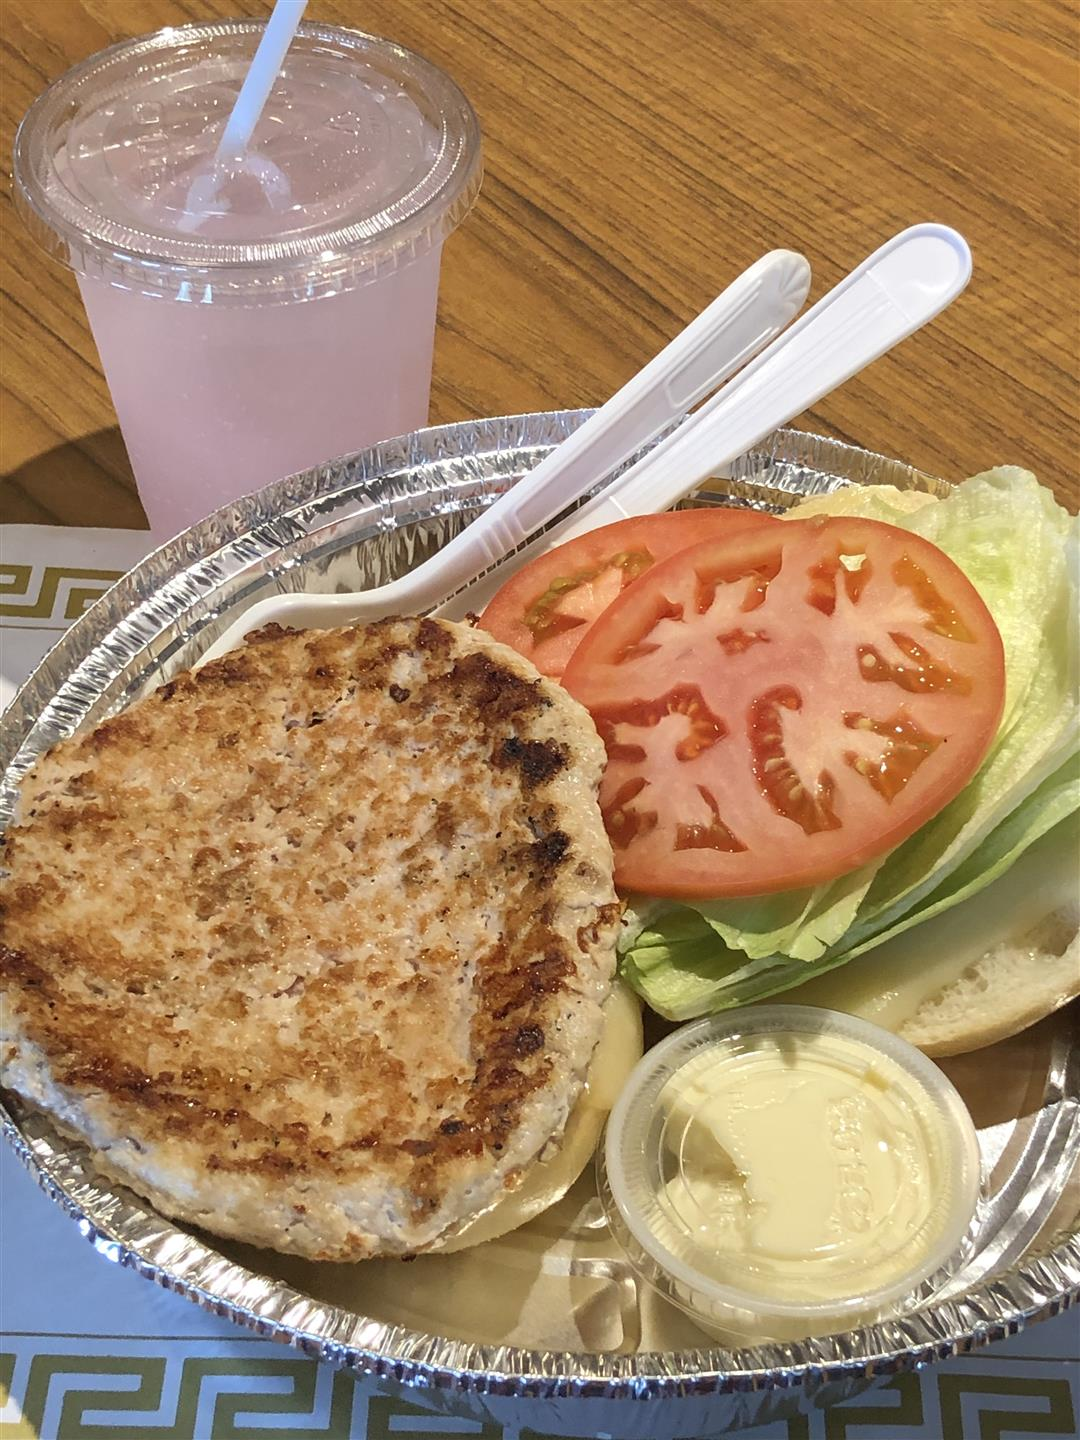 Turkey Burger and Lemonade